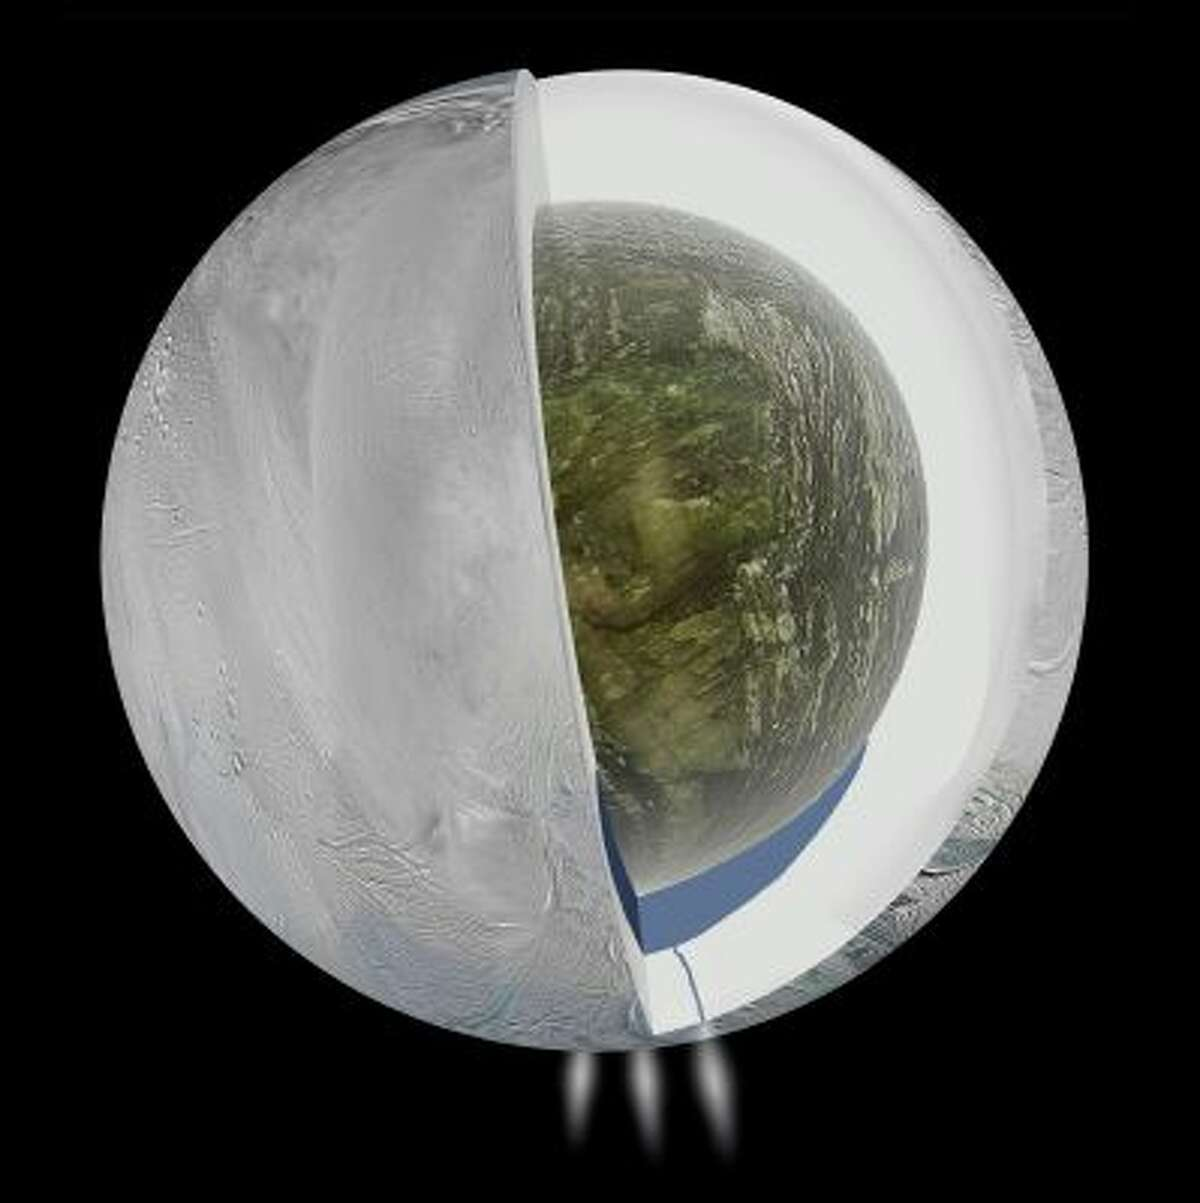 This illustration provided by NASA and based on Cassini spacecraft measurements shows the possible interior of Saturn's moon Enceladus - an icy outer shell and a low density, rocky core with a regional water ocean sandwiched in between the two at southern latitudes. Plumes of water vapor and ice, first detected in 2005, are depicted in the south polar region. Scientists have uncovered a vast ocean beneath the icy surface of the moon, they announced Thursday, April 3, 2014. Italian and American researchers made the discovery using Cassini, a NASA-European spacecraft still exploring Saturn and its rings 17 years after its launch from Cape Canaveral. (AP Photo/NASA, JPL, Caltech)